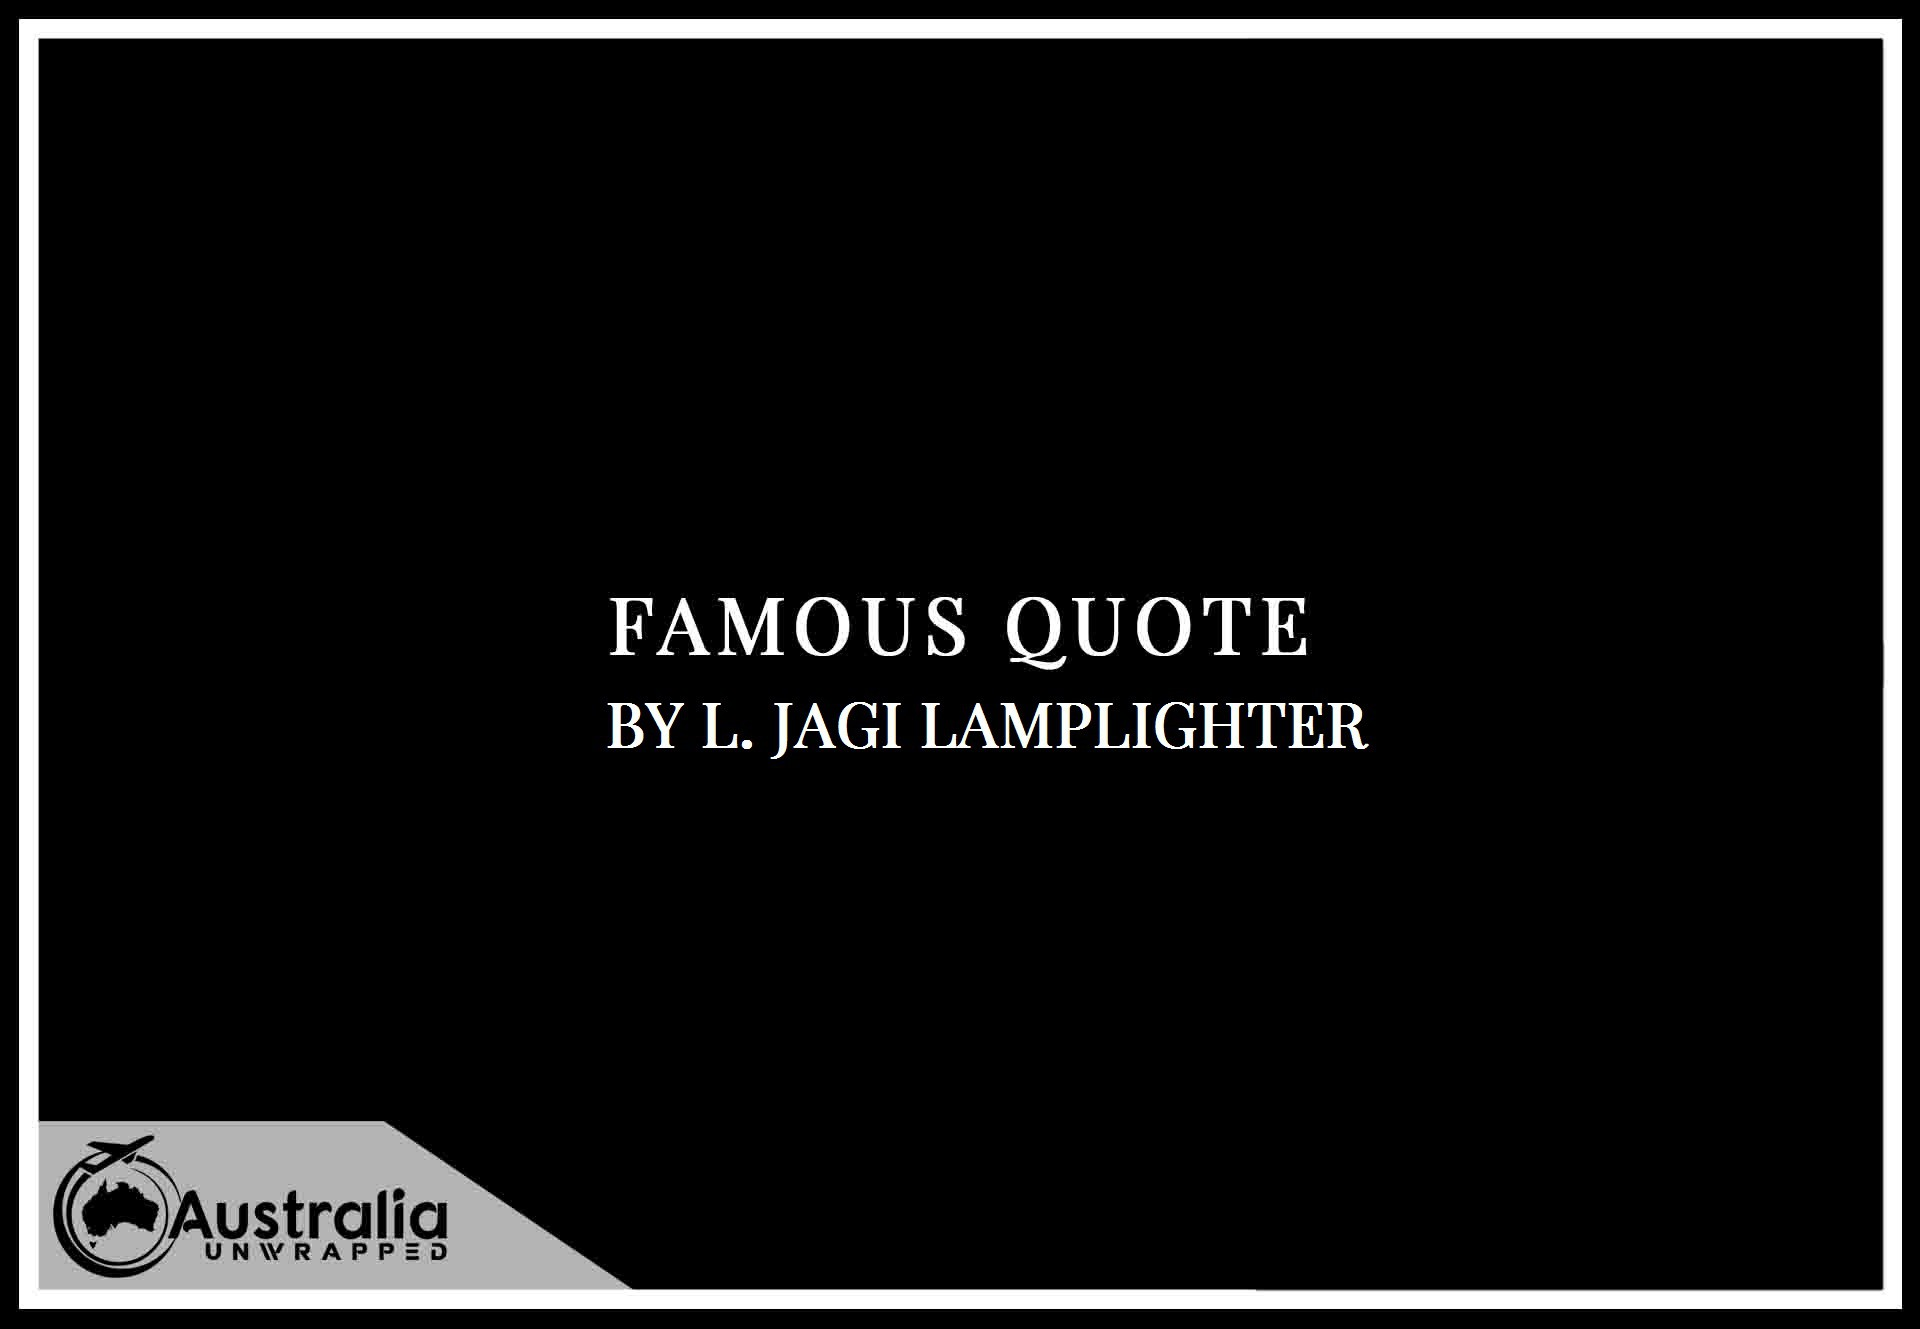 L. Jagi Lamplighter's Top 1 Popular and Famous Quotes